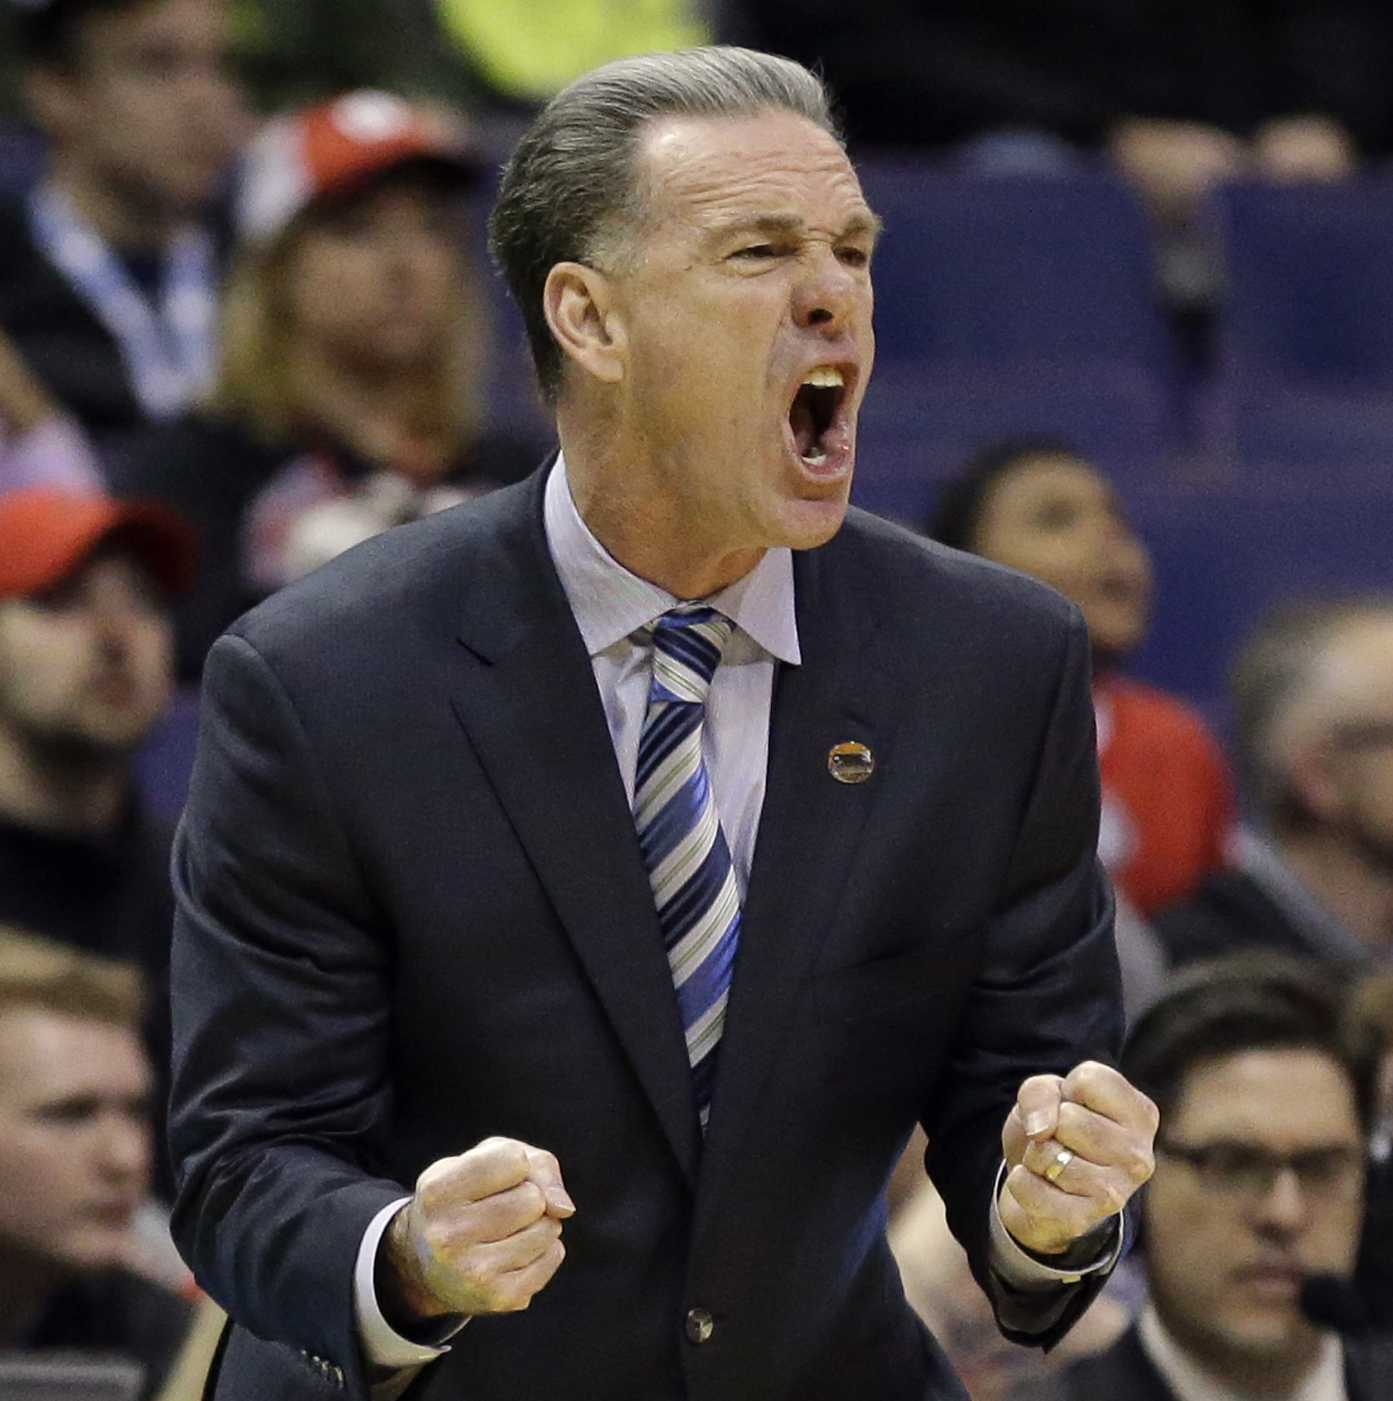 Pittsburgh coach Jamie Dixon yells on the sideline during the first round of the NCAA tournament on March 18.